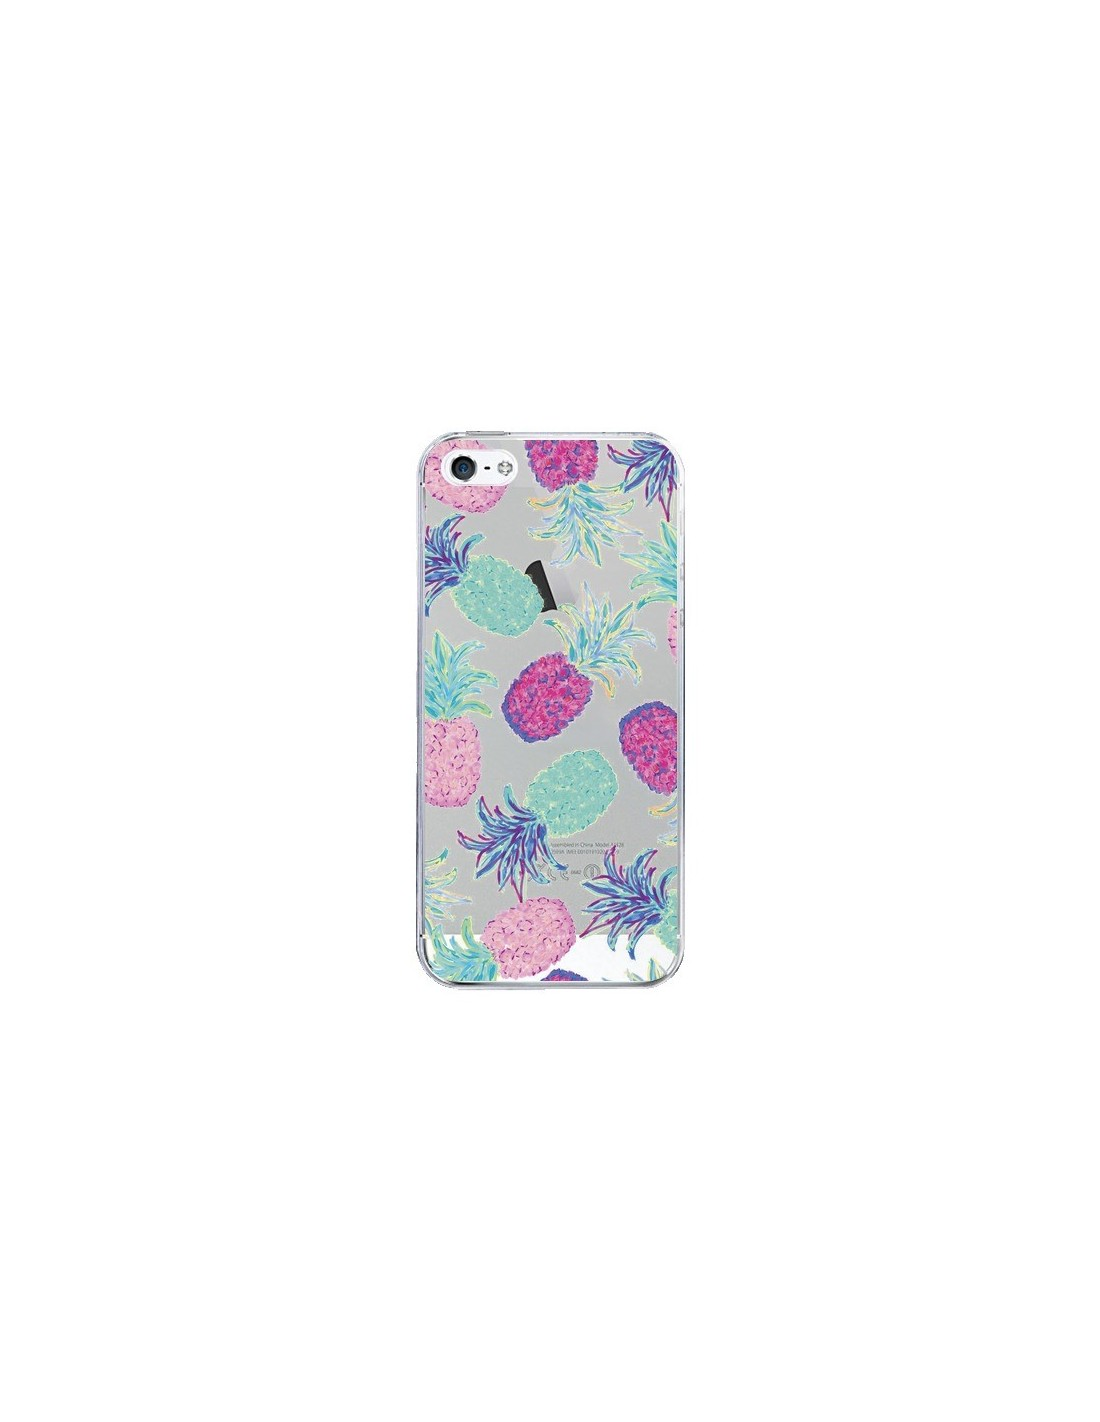 coque iphone 5 5s se ananas pineapple fruit ete summer transparente 5s et se lisa argyropoulos